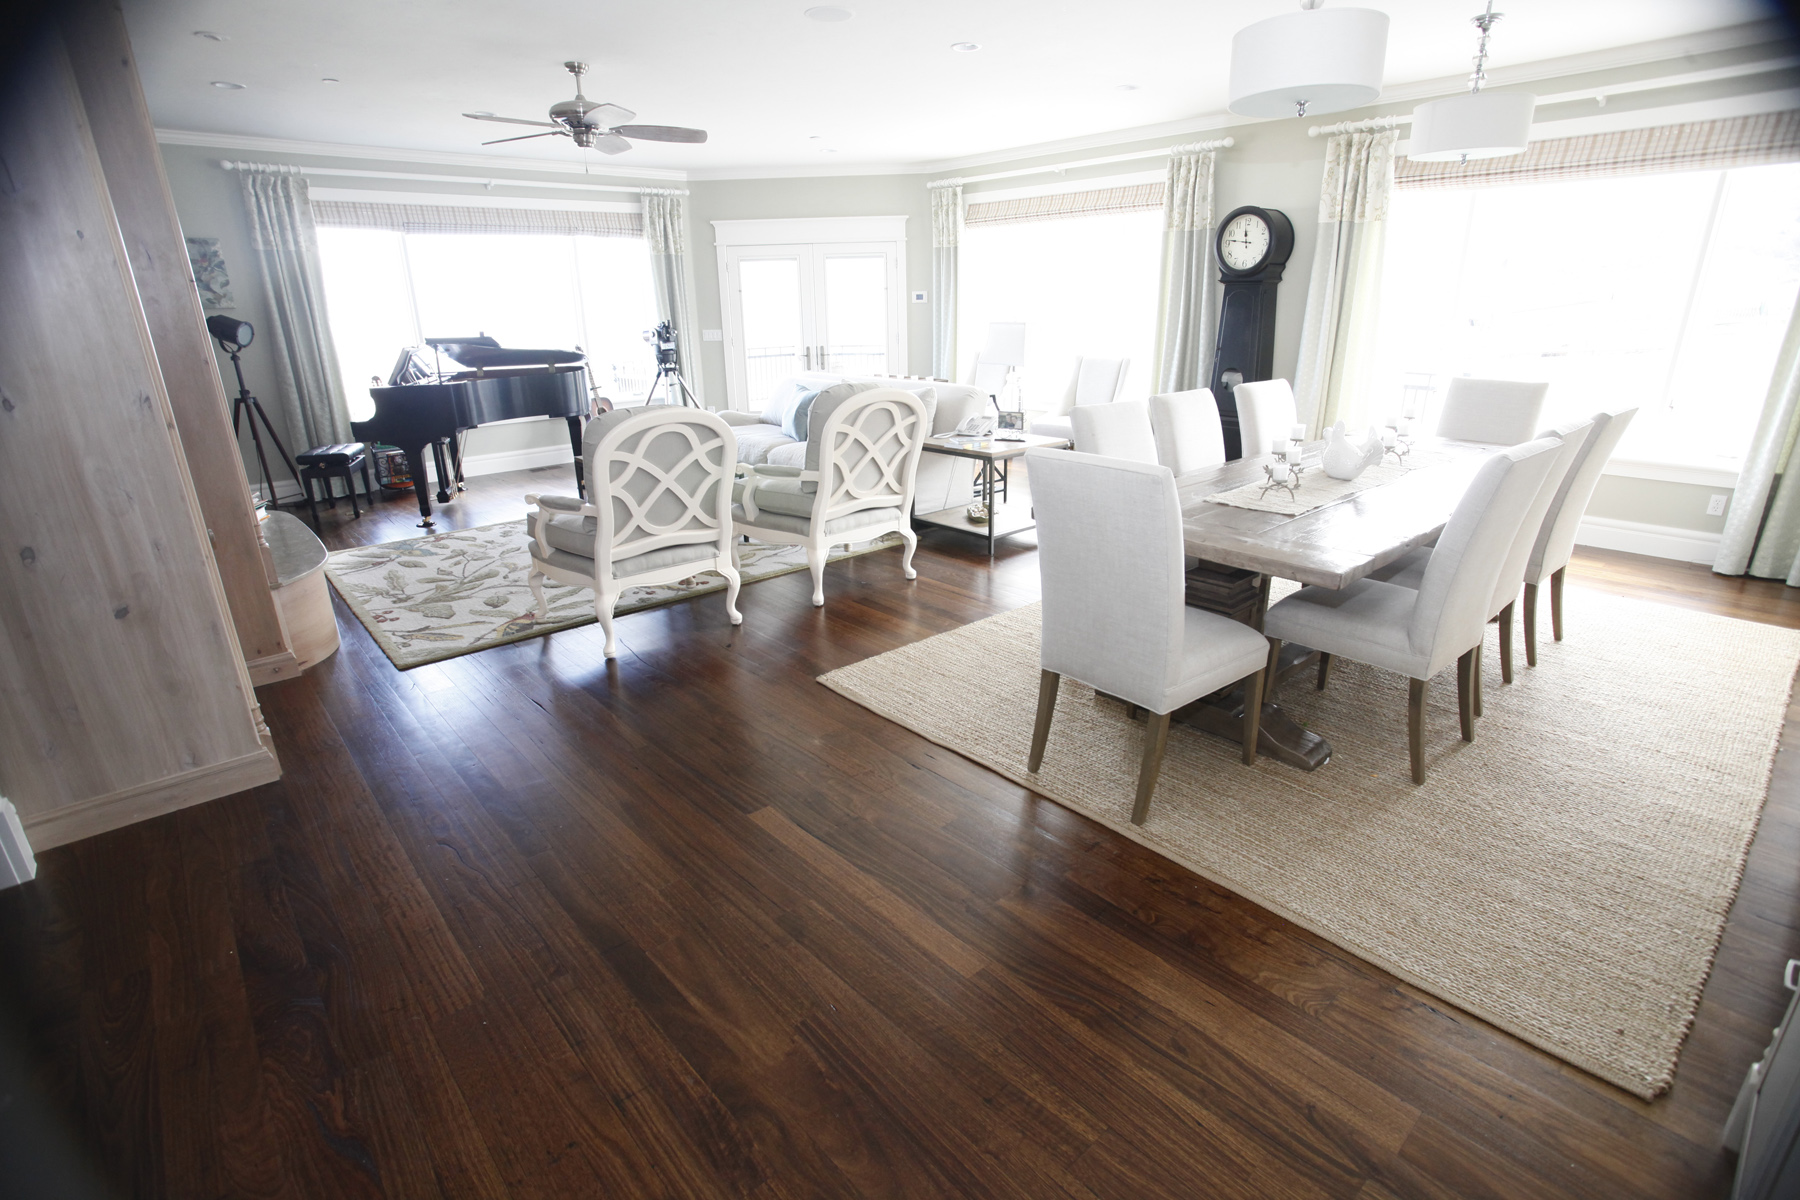 Bolefloor living room floor interior design ideas living for Wood flooring ideas for living room